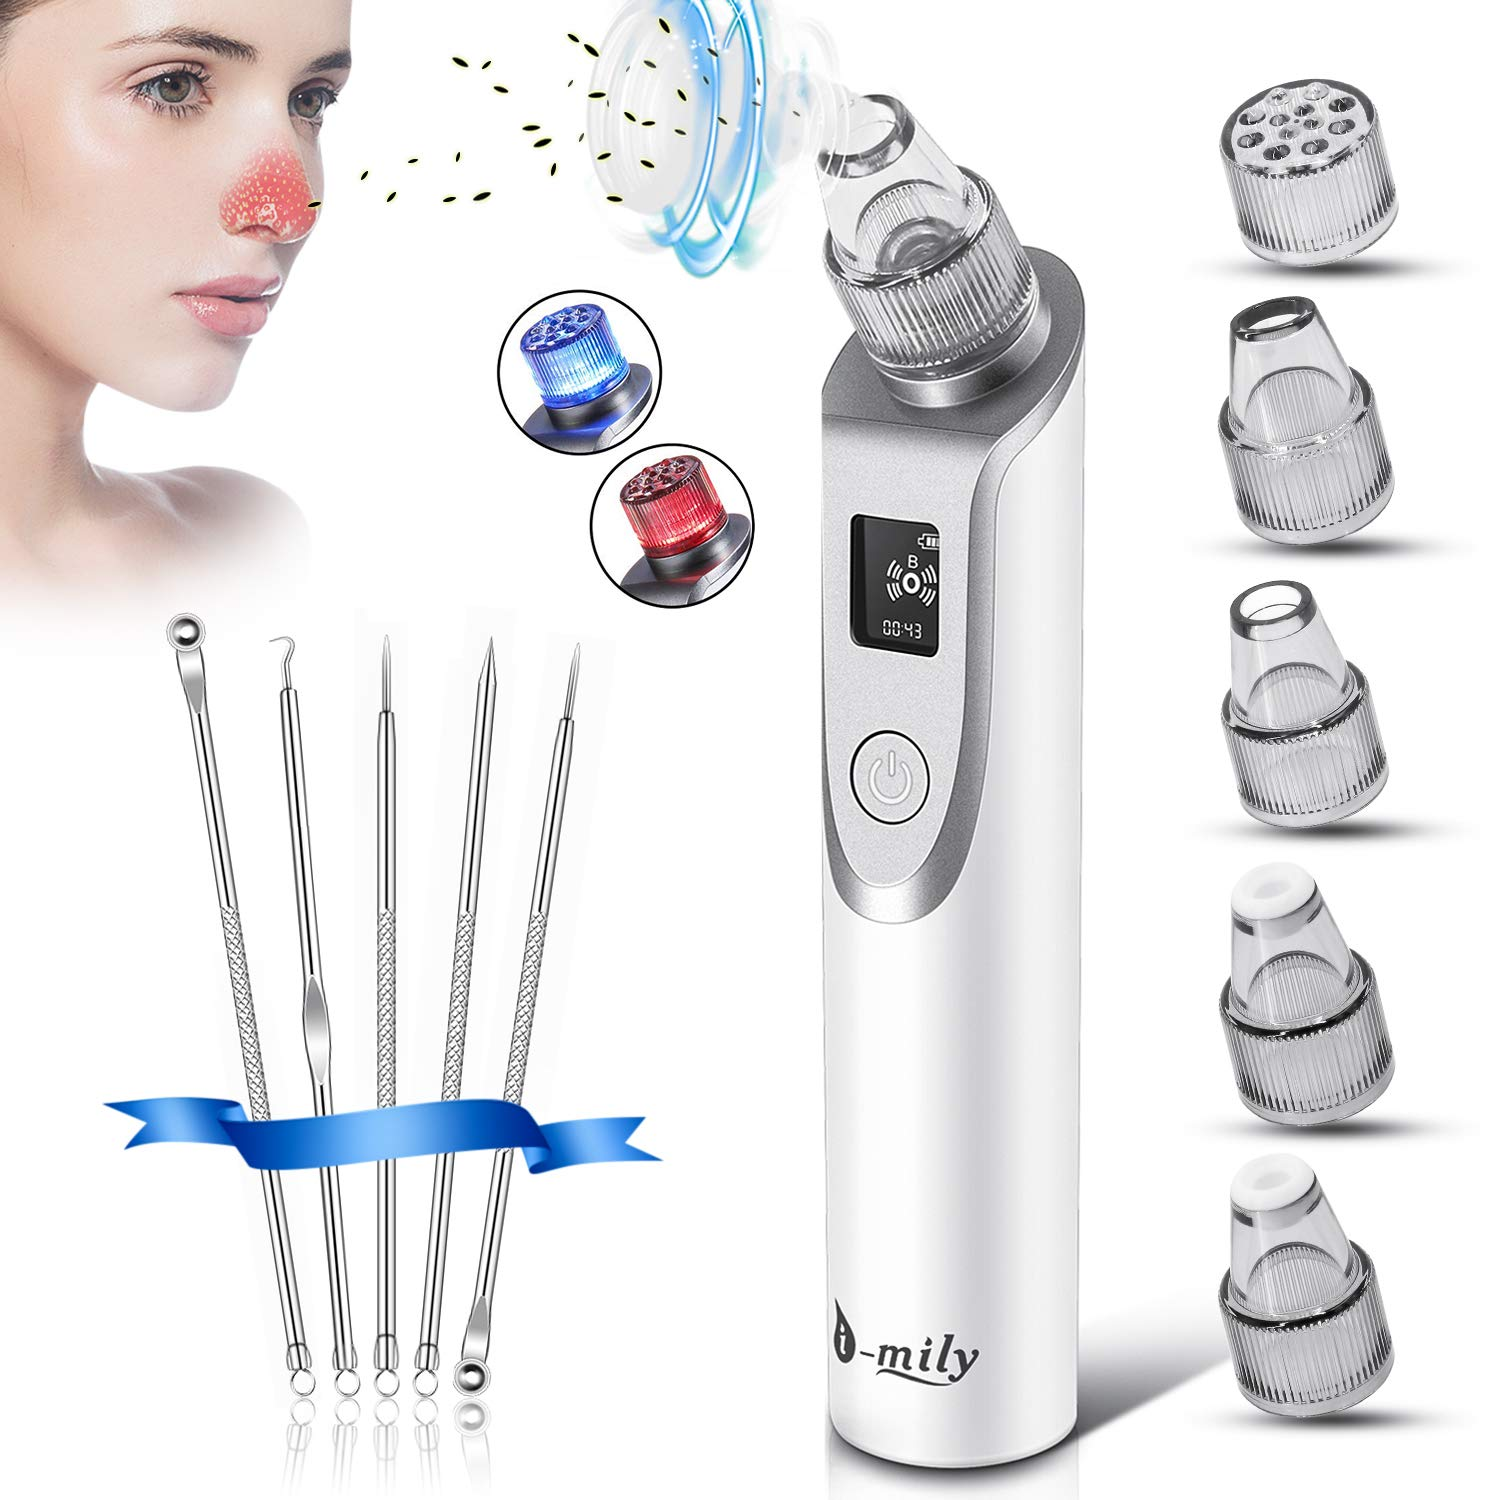 Blackhead Remover Vacuum - Pore Vacuum Cleaner Electric Suction Facial Comedo Acne Extractor Tool Set with LED Display for Women & Men (02)